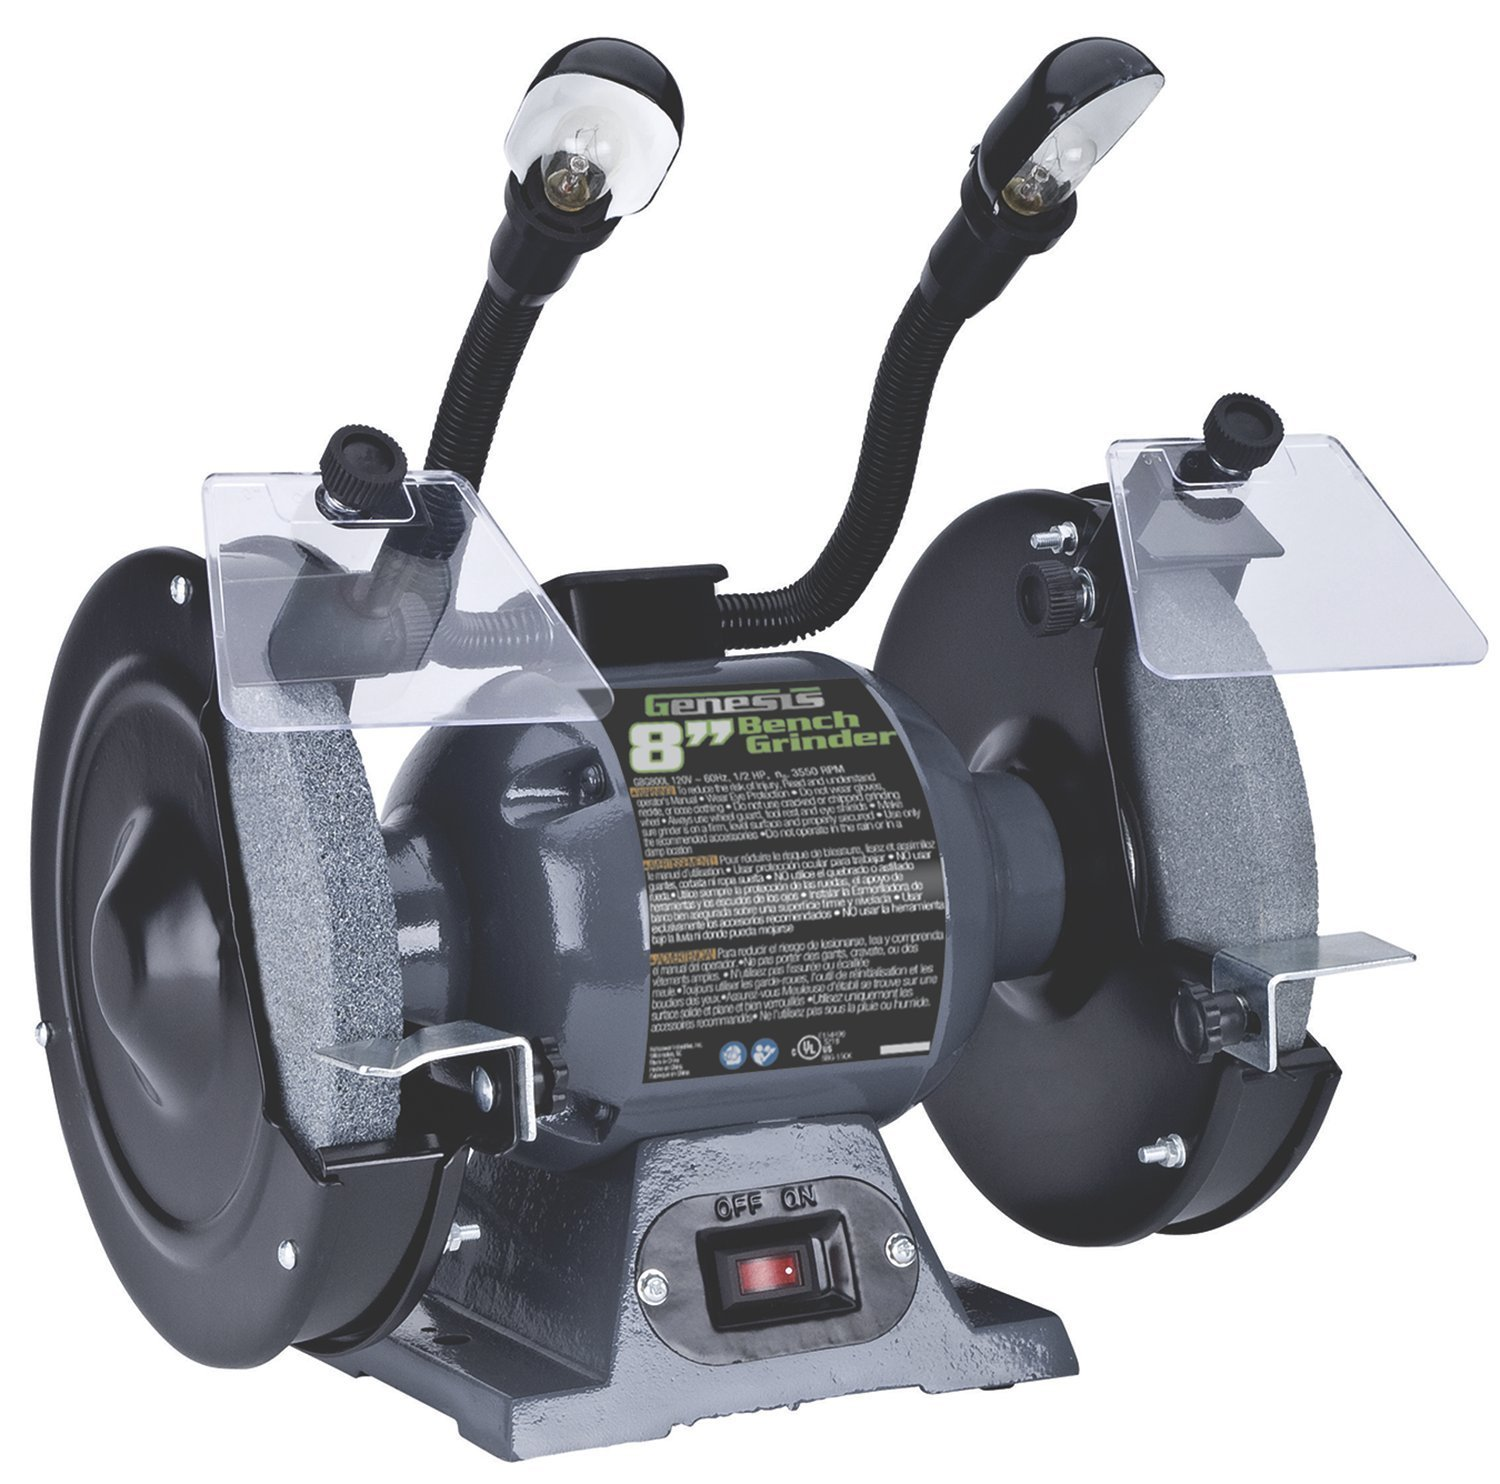 8 8 Genesis GBG800L Bench Grinder with Dual Light